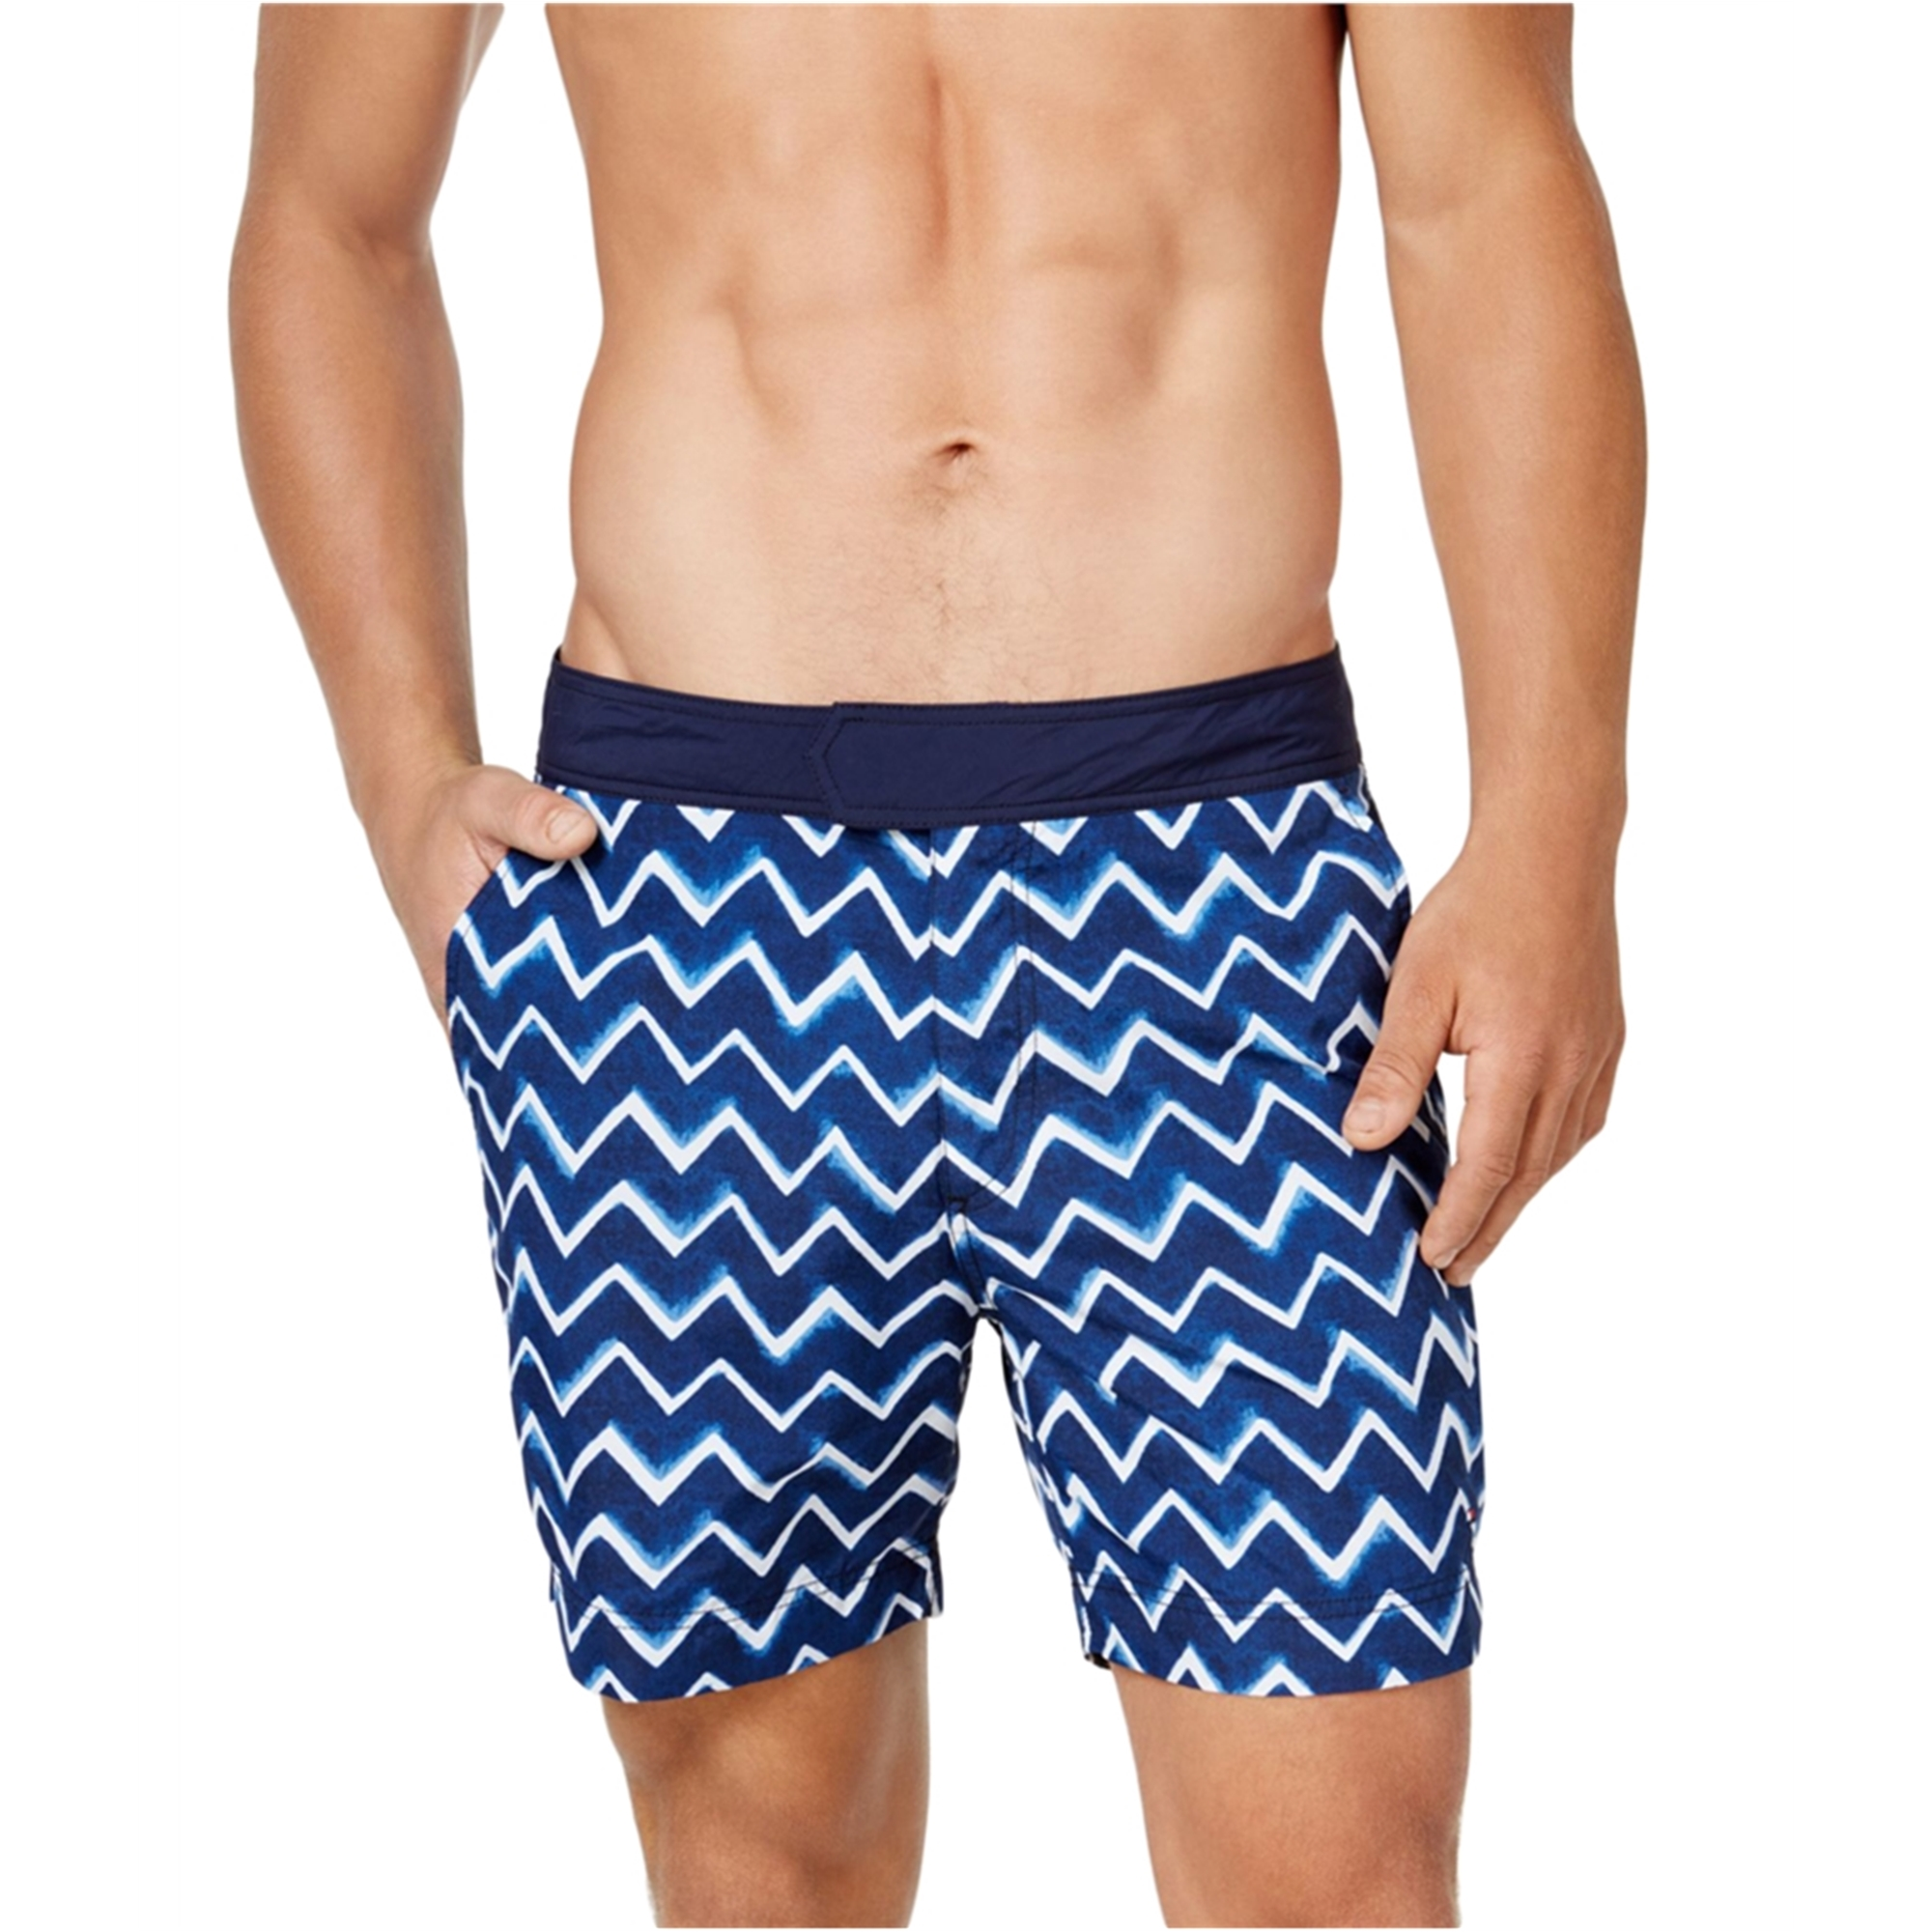 Tommy Hilfiger Mens Winward Wave Swim Bottom Board Shorts